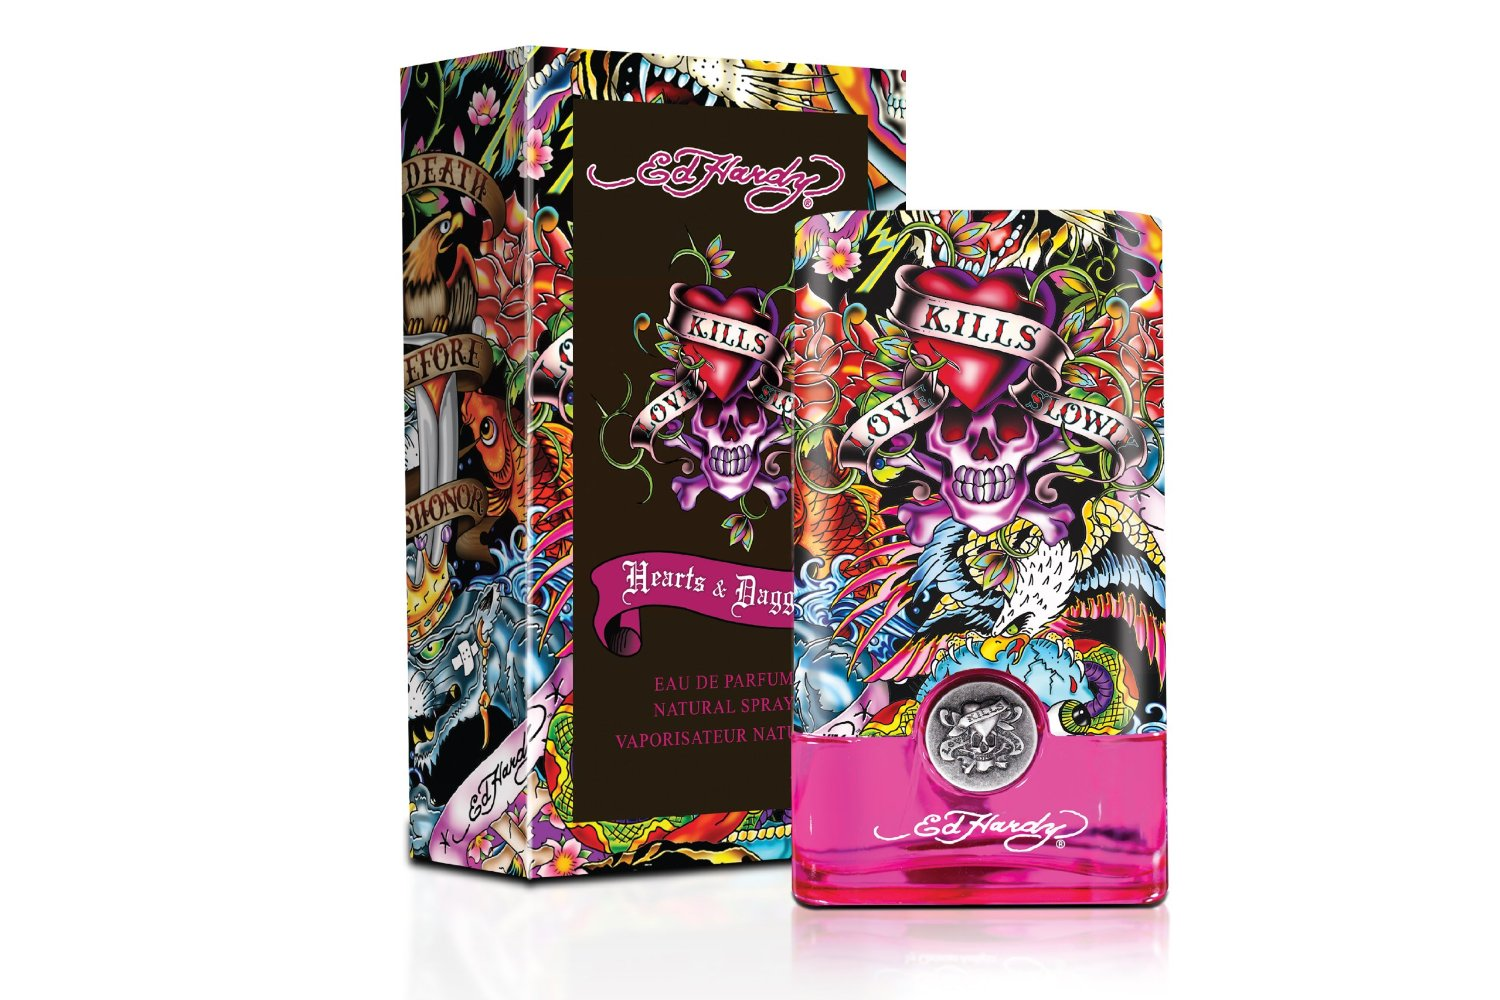 Christian Audigier ED Hardy Hearts & Draggers Women EDP 100ml